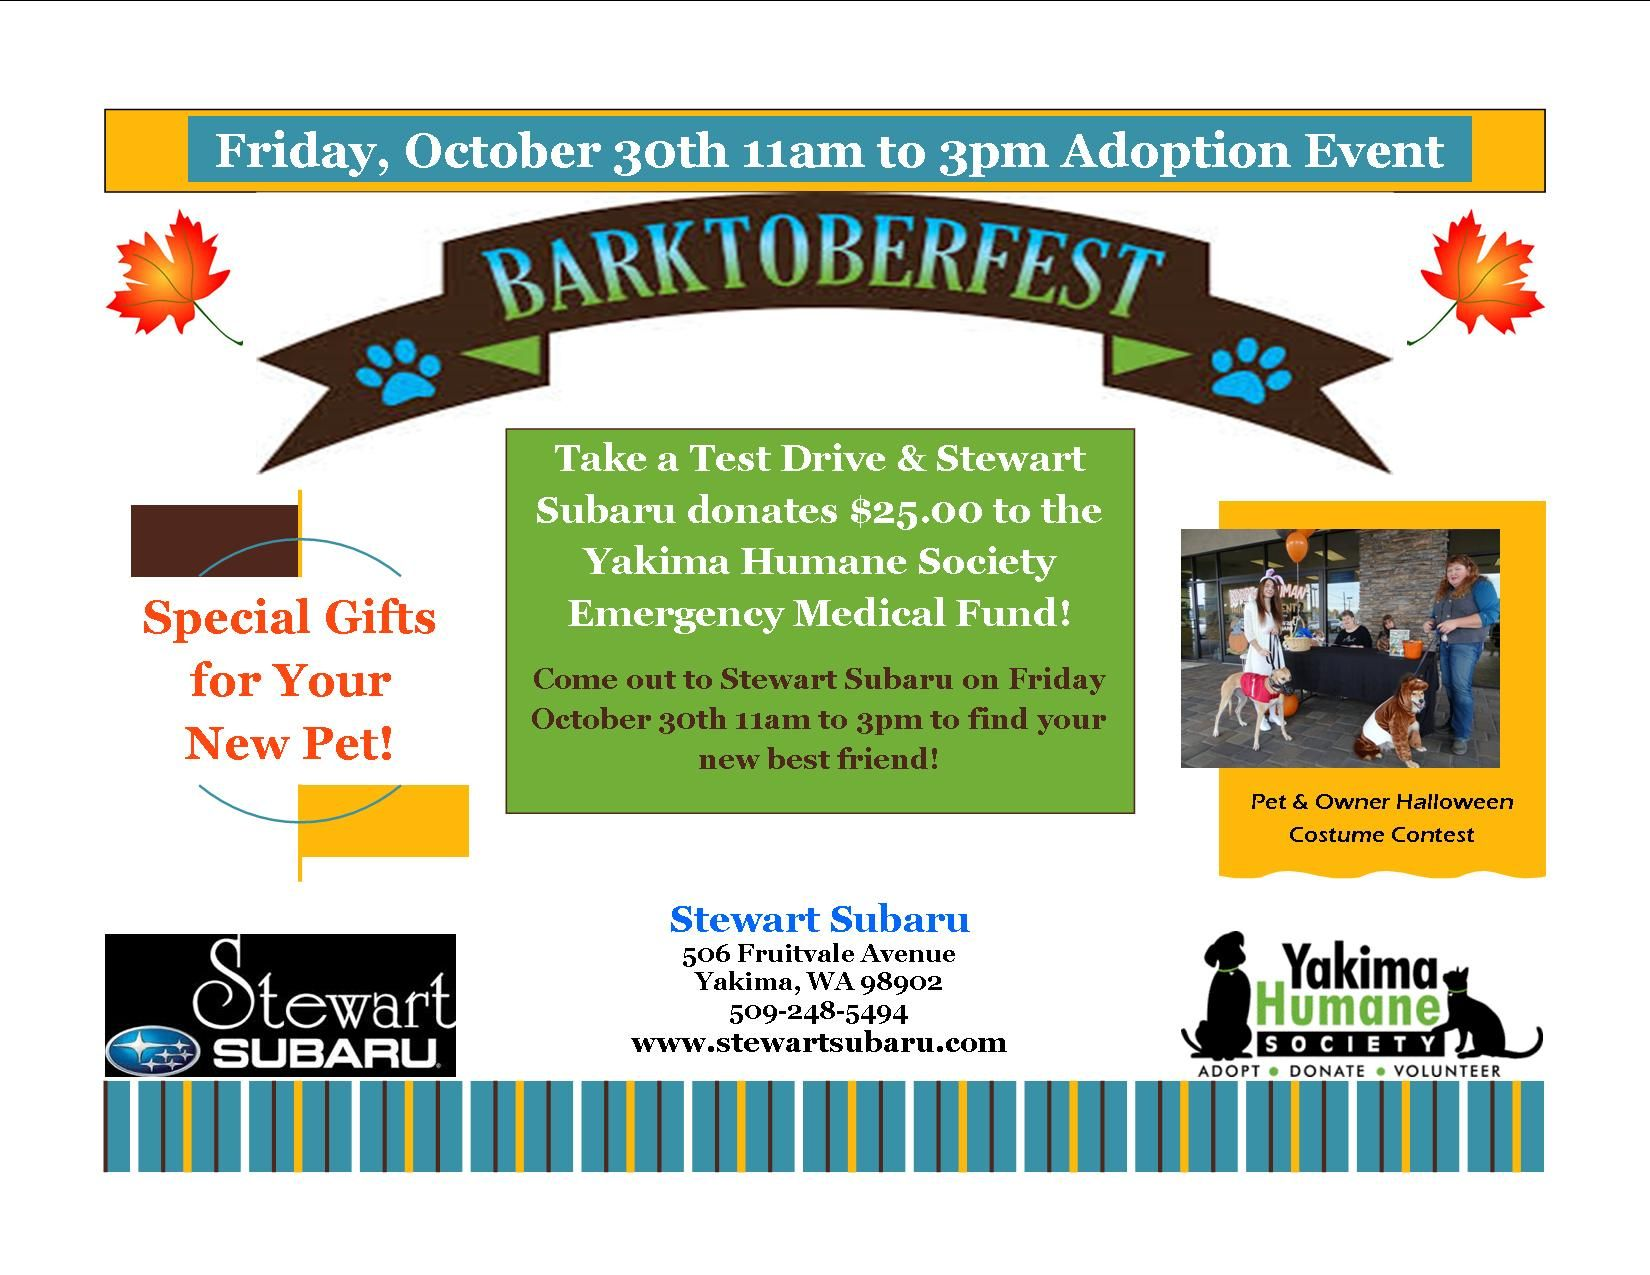 Stewart Subaru Barktoberfest Adoption Event October 30th 11am To 3pm Find Your New Best Friend And Support The Yak Donation Drive Humane Society Special Gifts